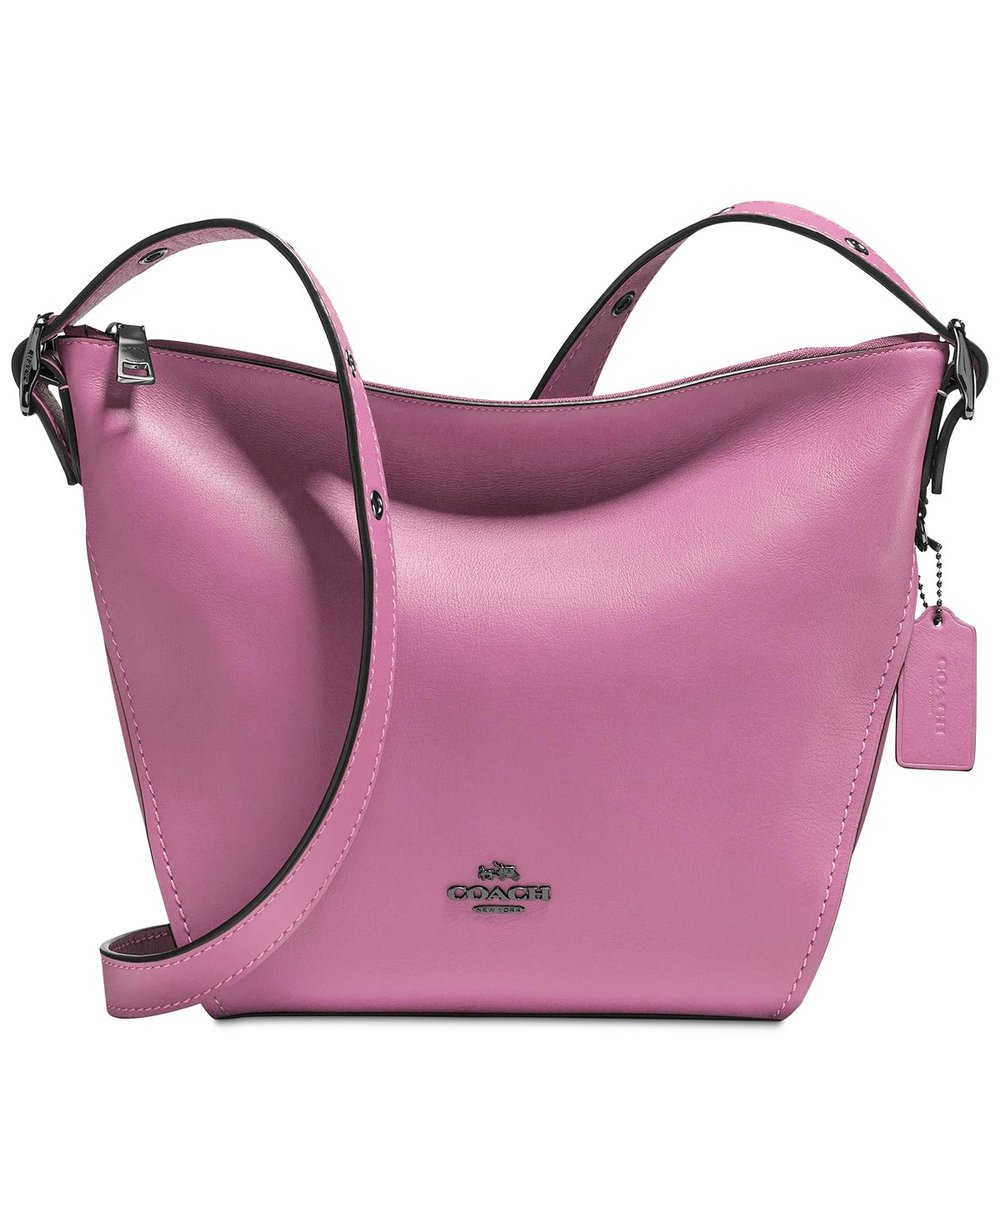 COACH Small Crossbody Dufflette - This COACH Small Crossbody Dufflette is avaialble in 10 colors. 4 of those colors are on sale right now. Normally $250.00 on sale now for $150.00